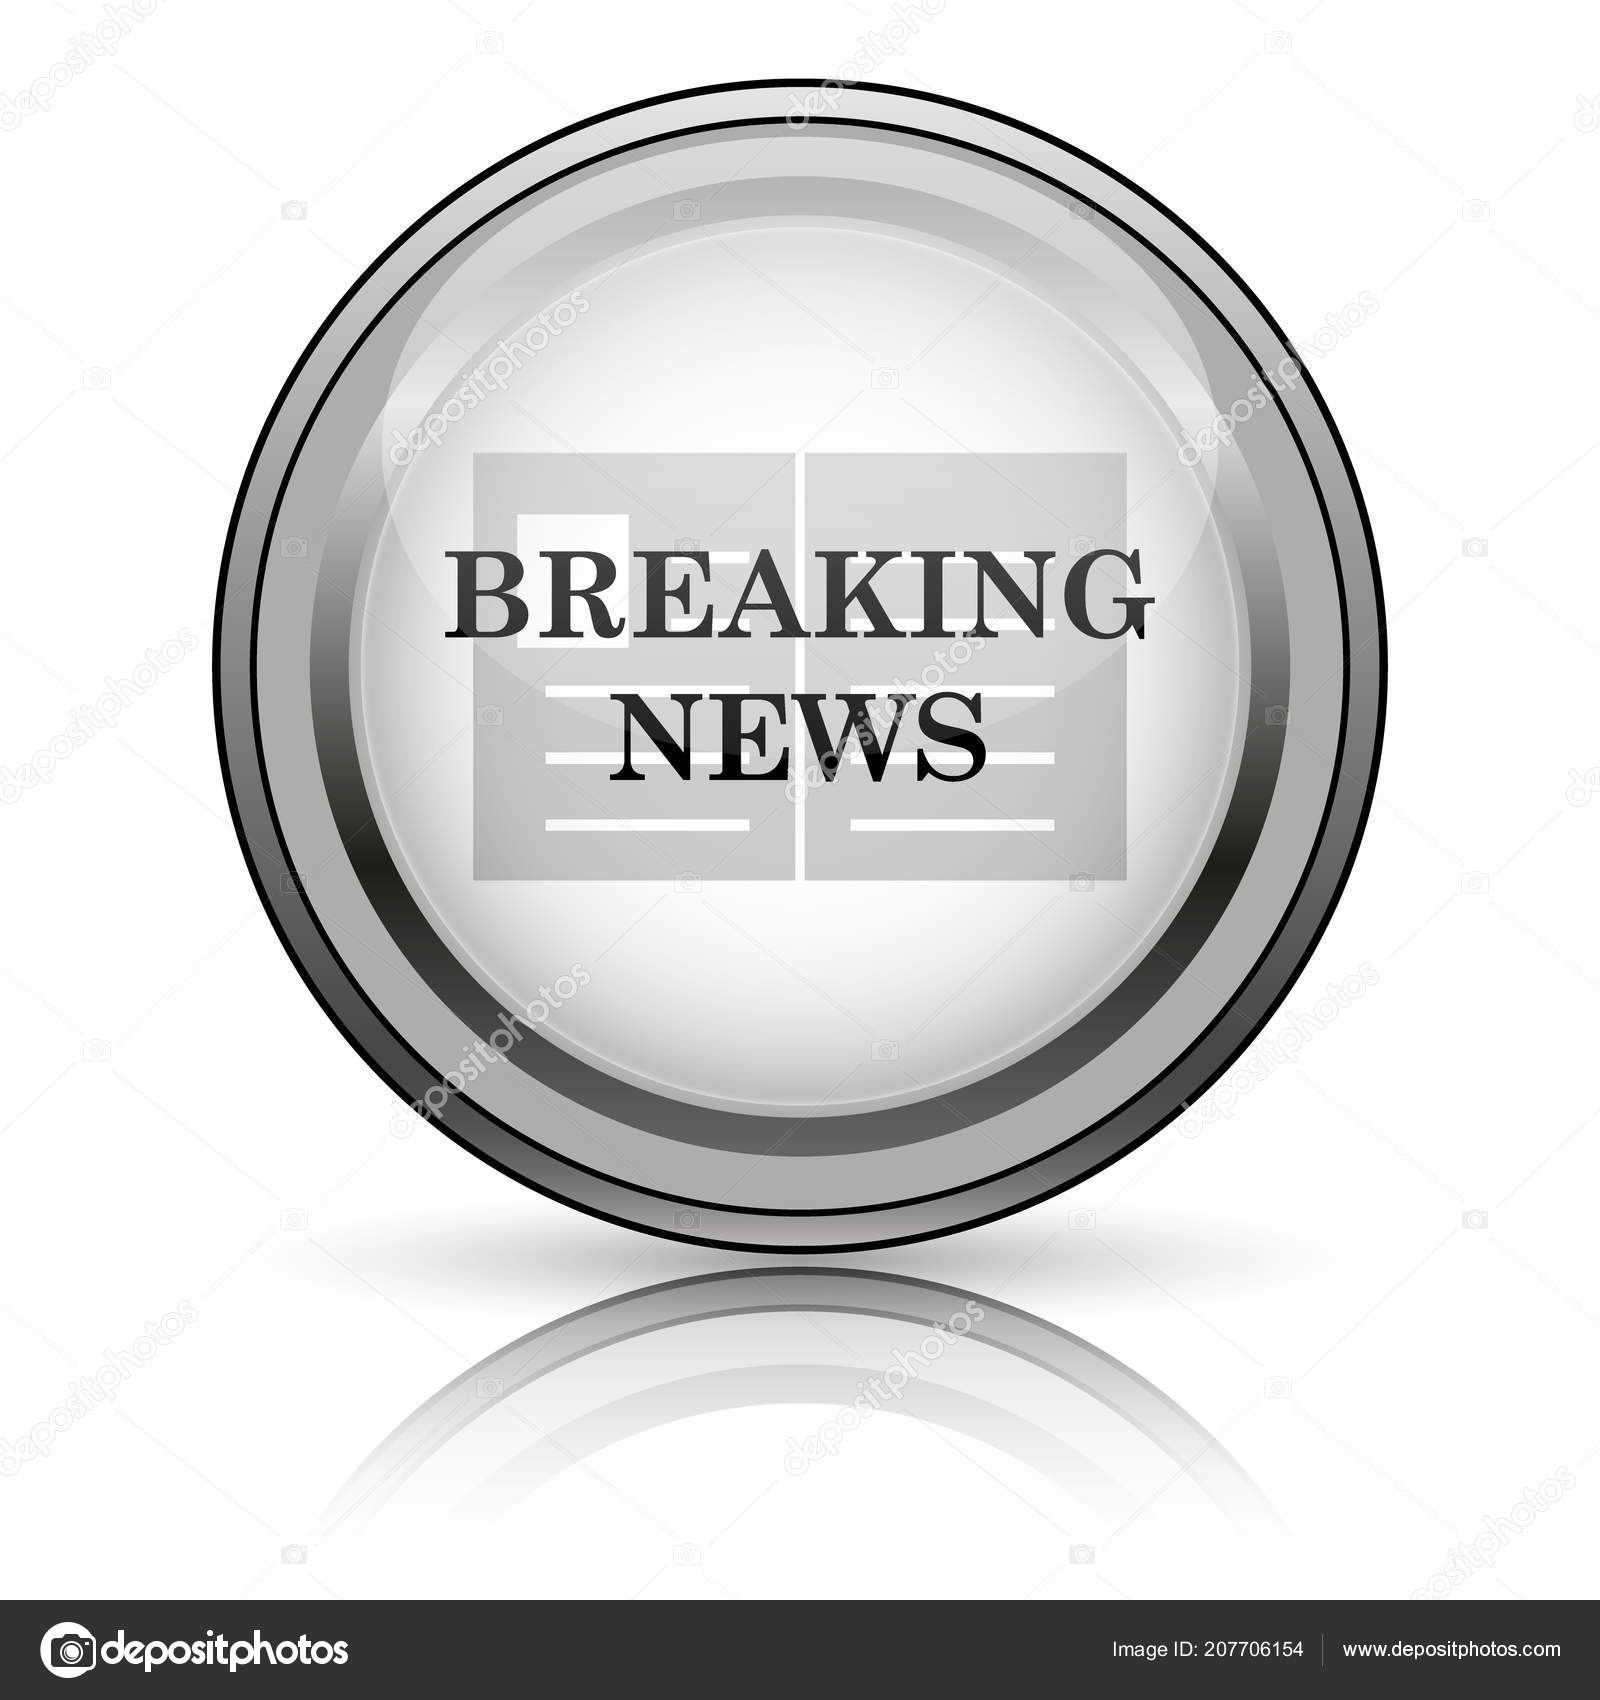 Breaking news icon — Stock Photo © valentint #207706154